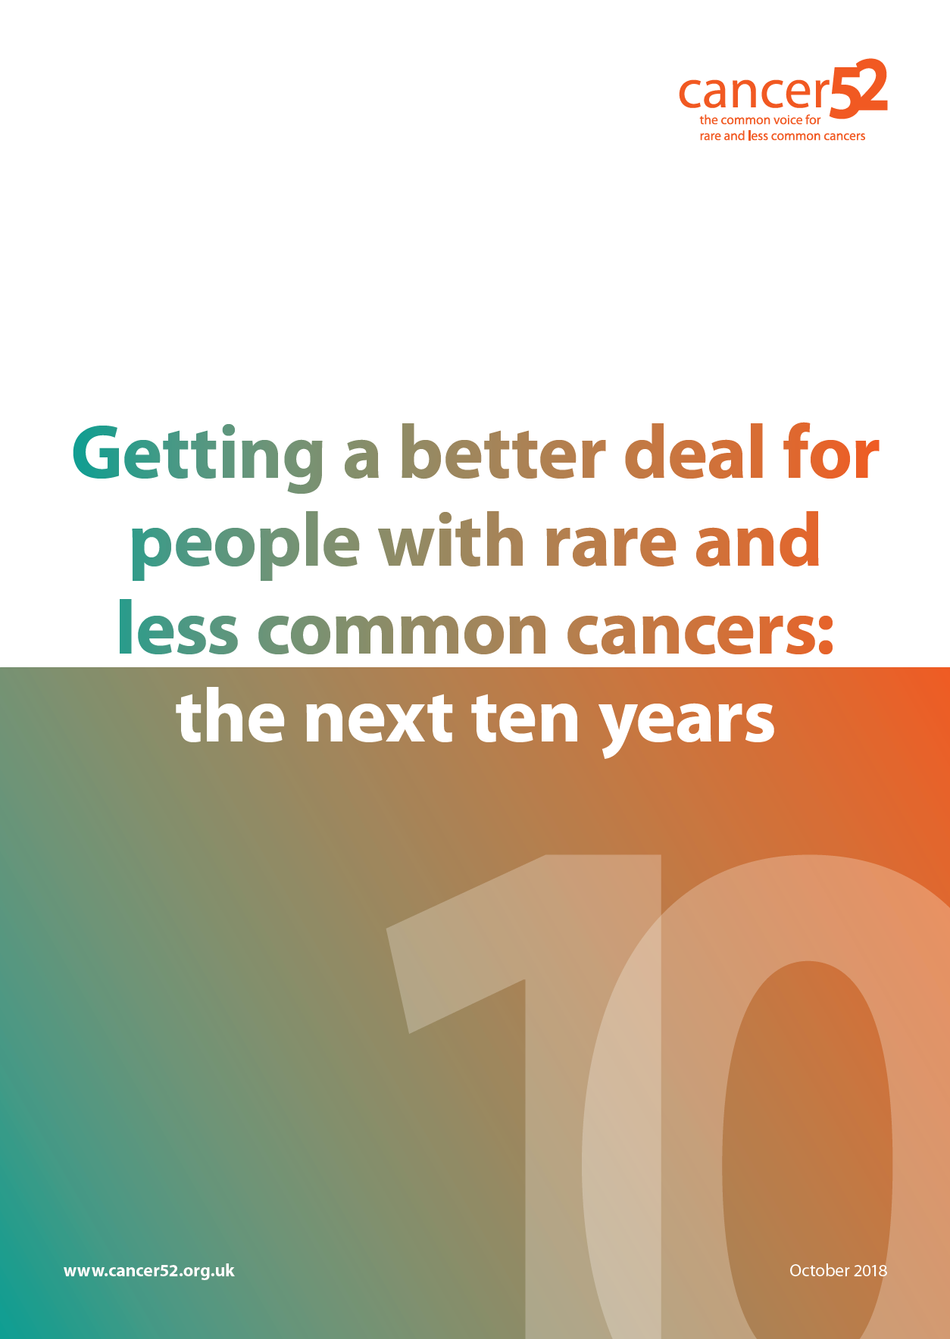 Getting a better deal for people with rare and less common cancers:  the next ten years